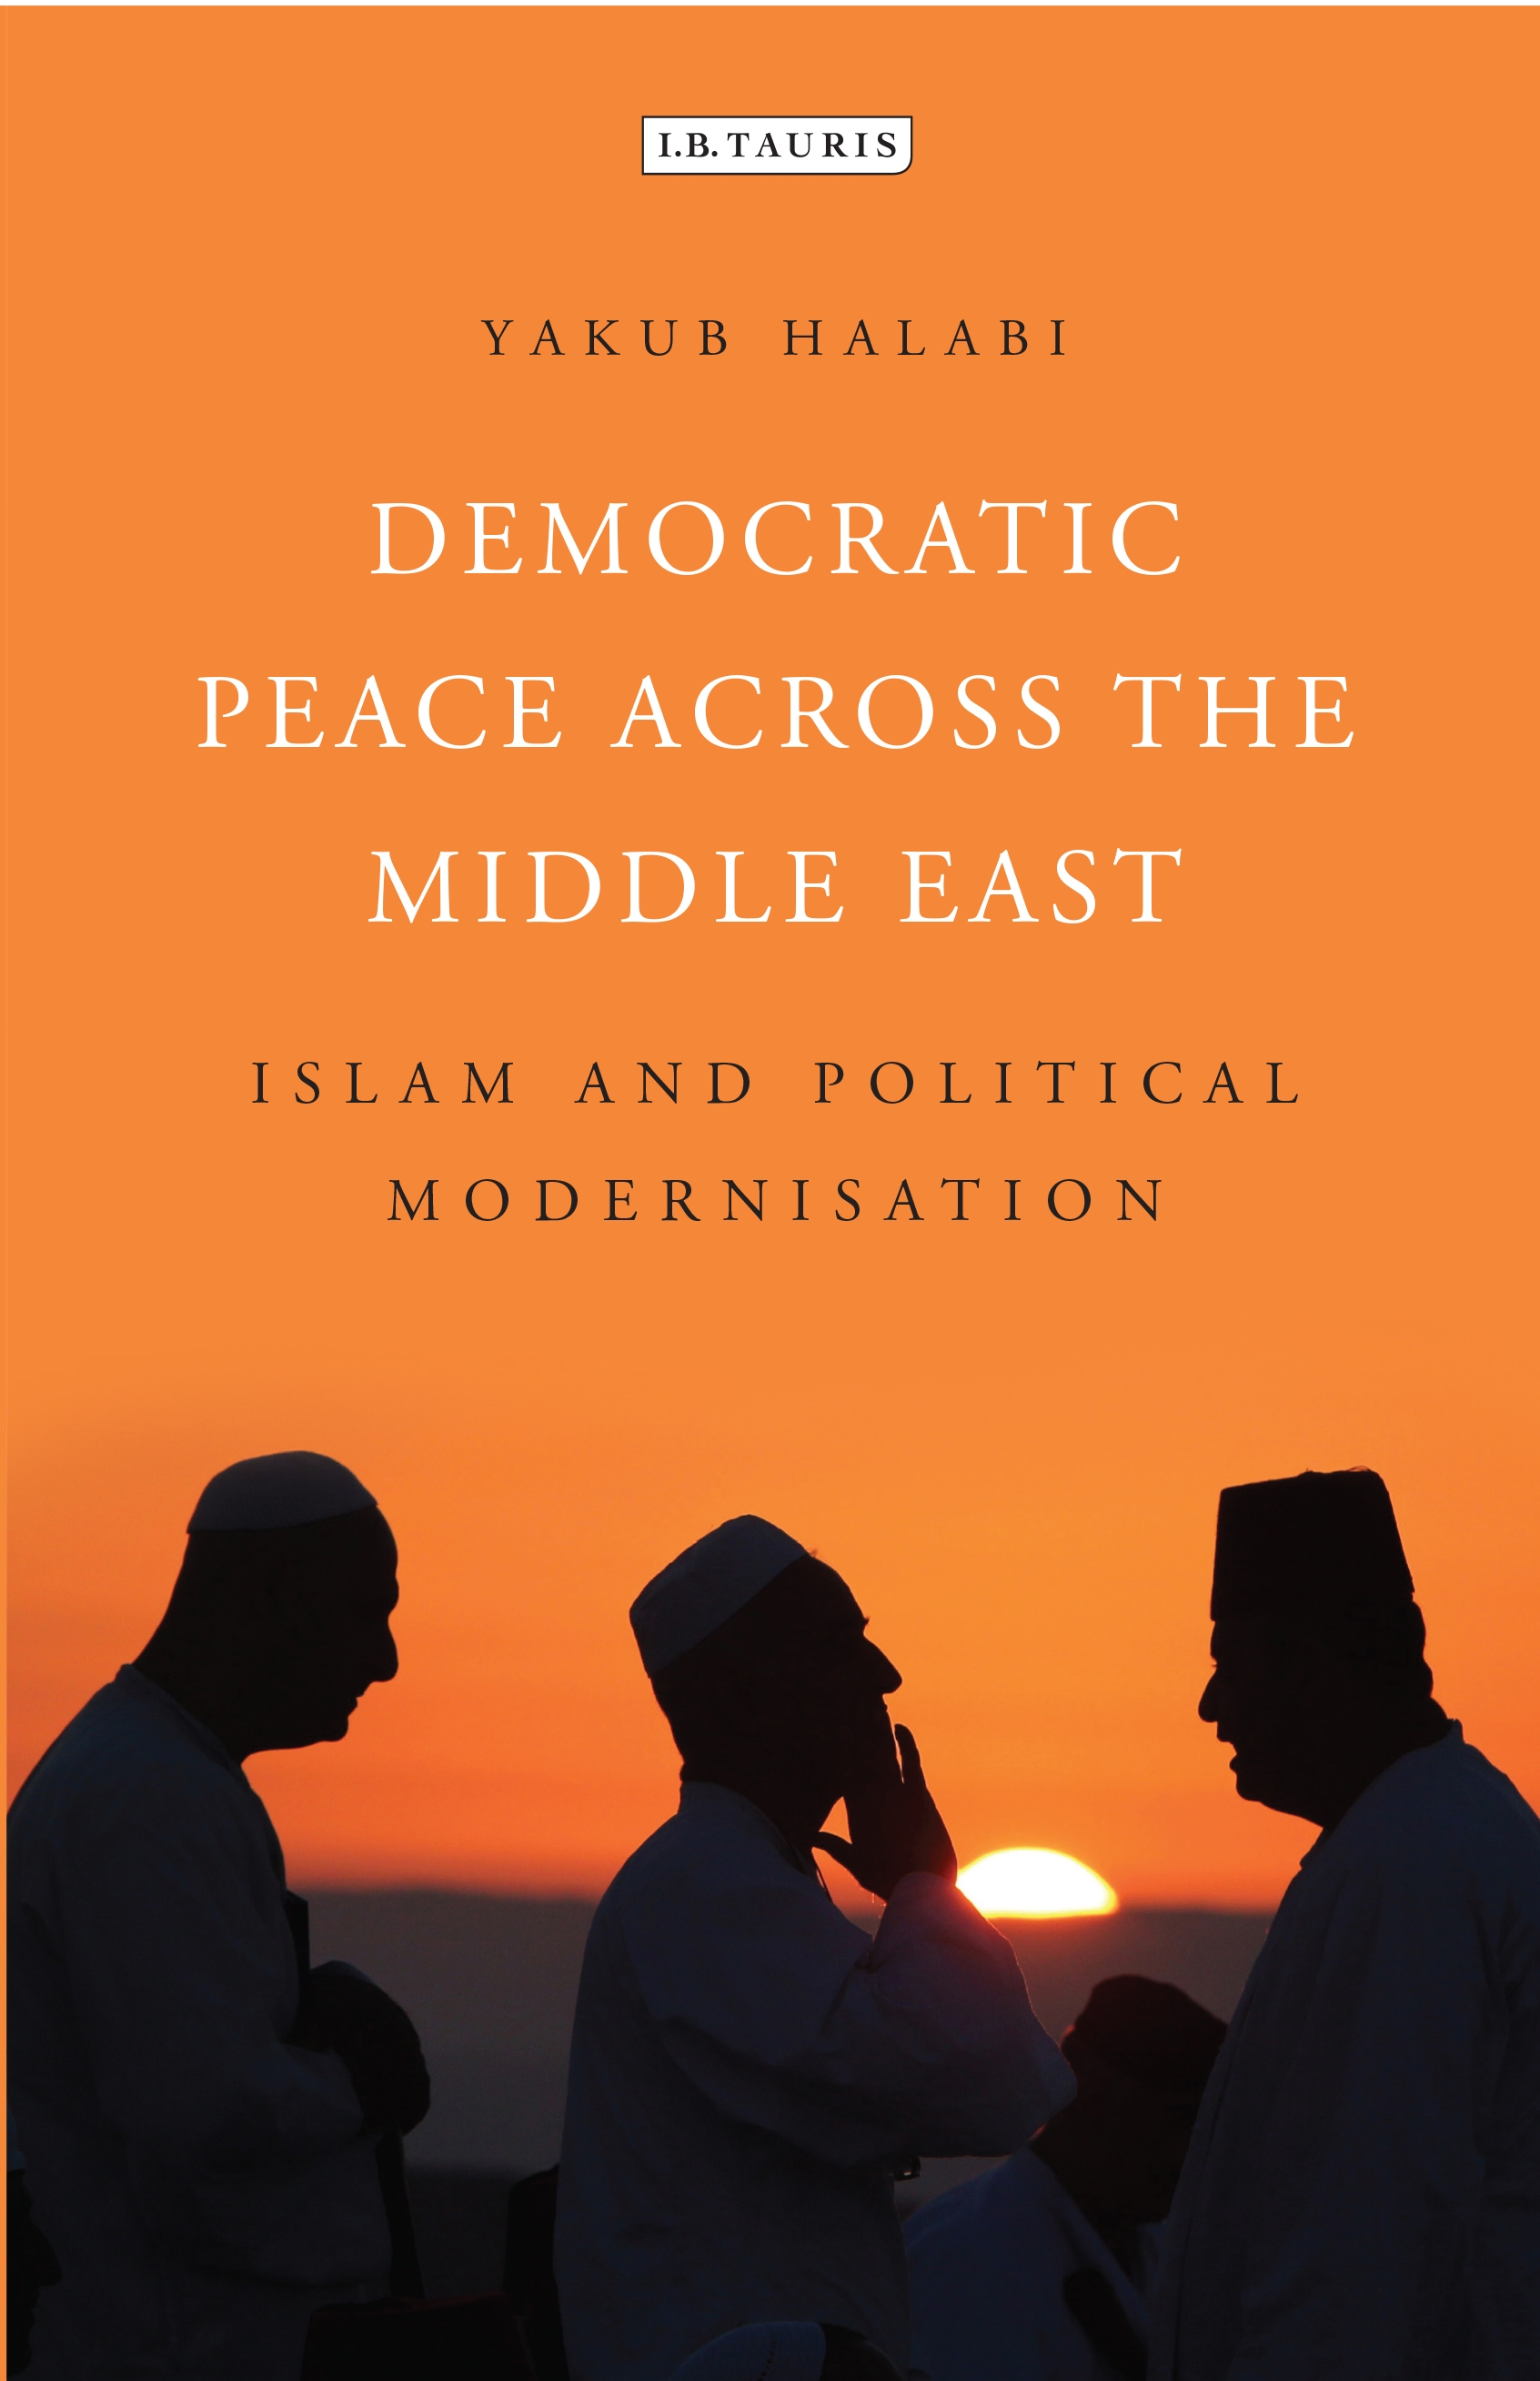 modernization of the middle east essay Published: mon, 5 dec 2016 thus the map of the middle east is then both recent and frequently a cause of conflict the term middle east was the creation of the colonialism during the second world war, when the most powerful countries had an interest in their nature resources.